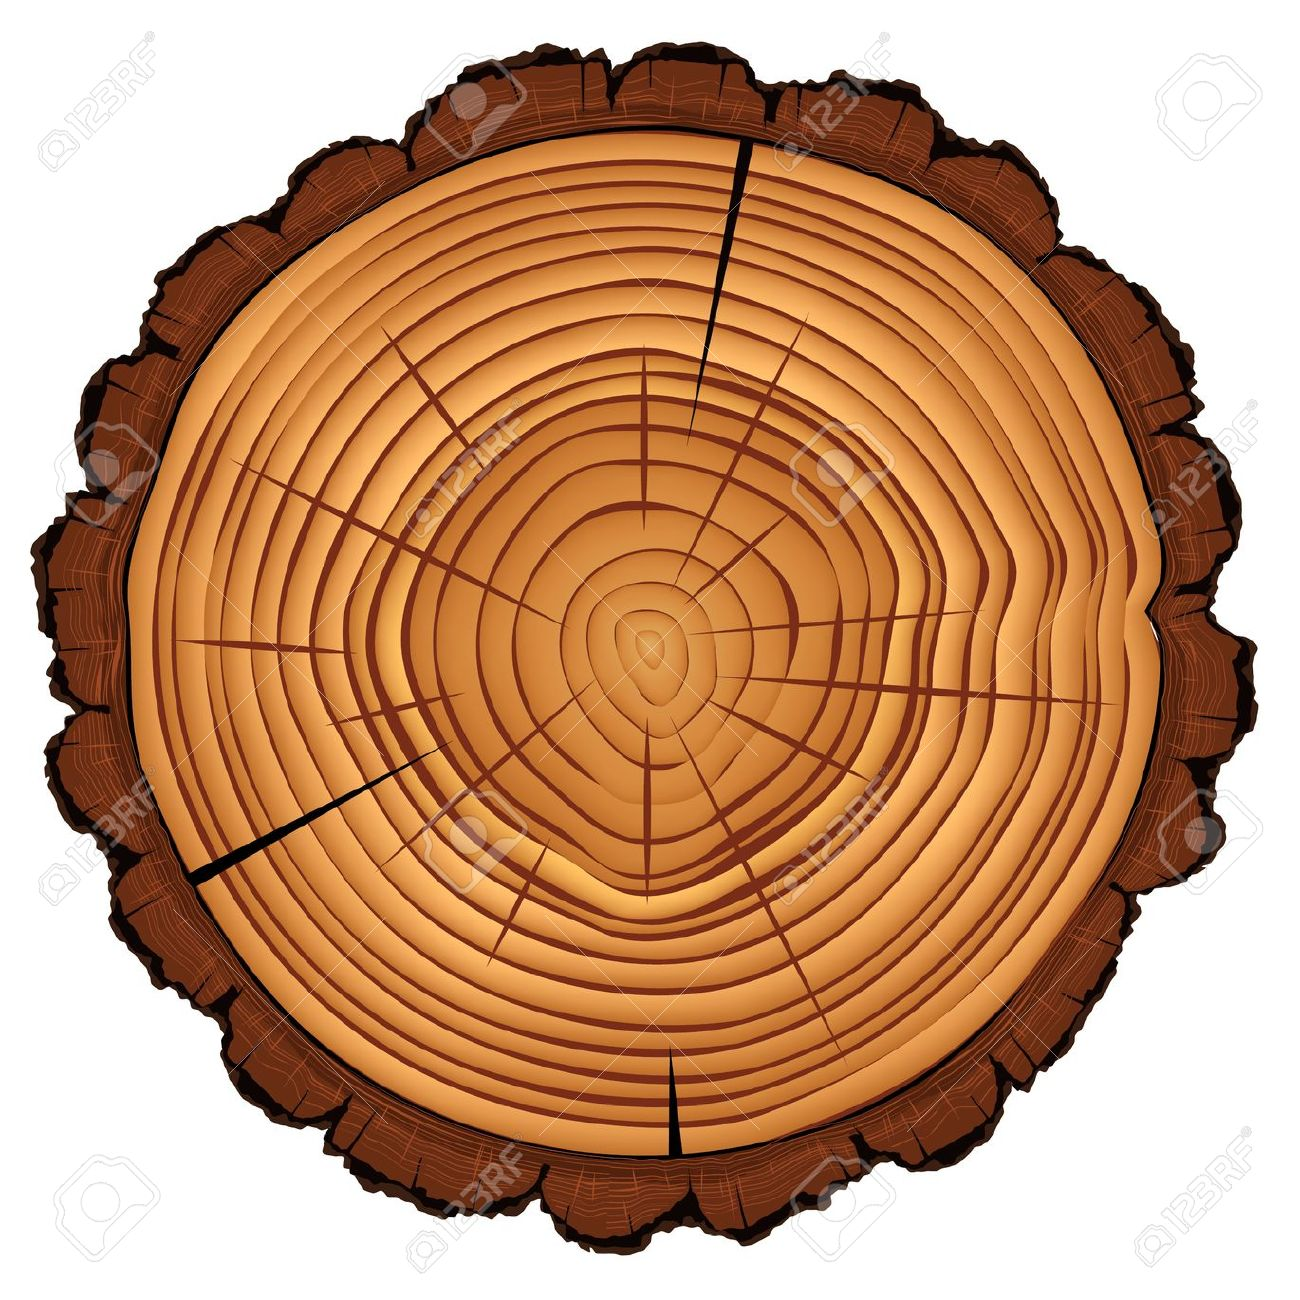 Pine tree cross clipart.